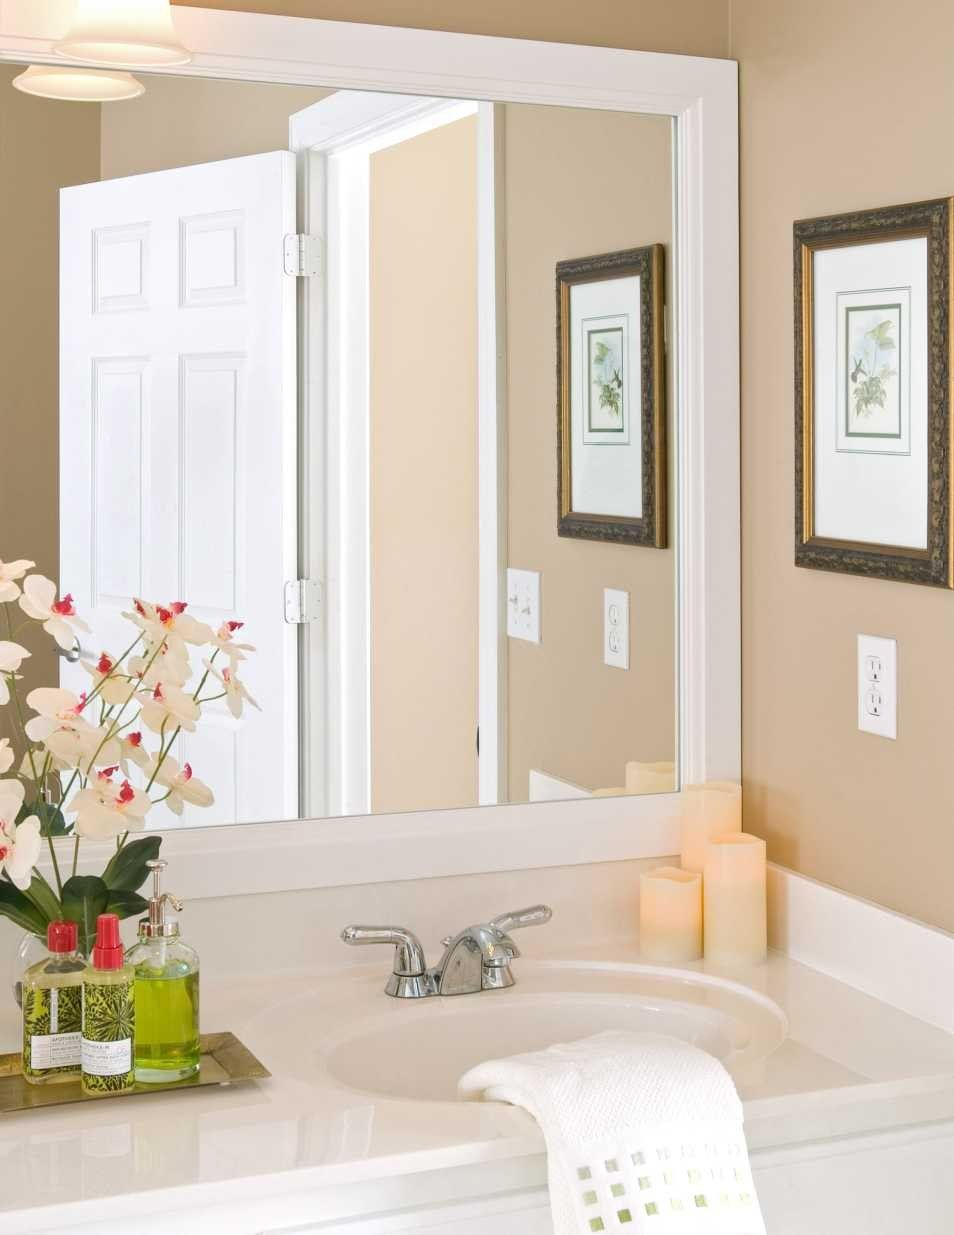 White Framed Bathroom Mirrors Mirrors Pinterest